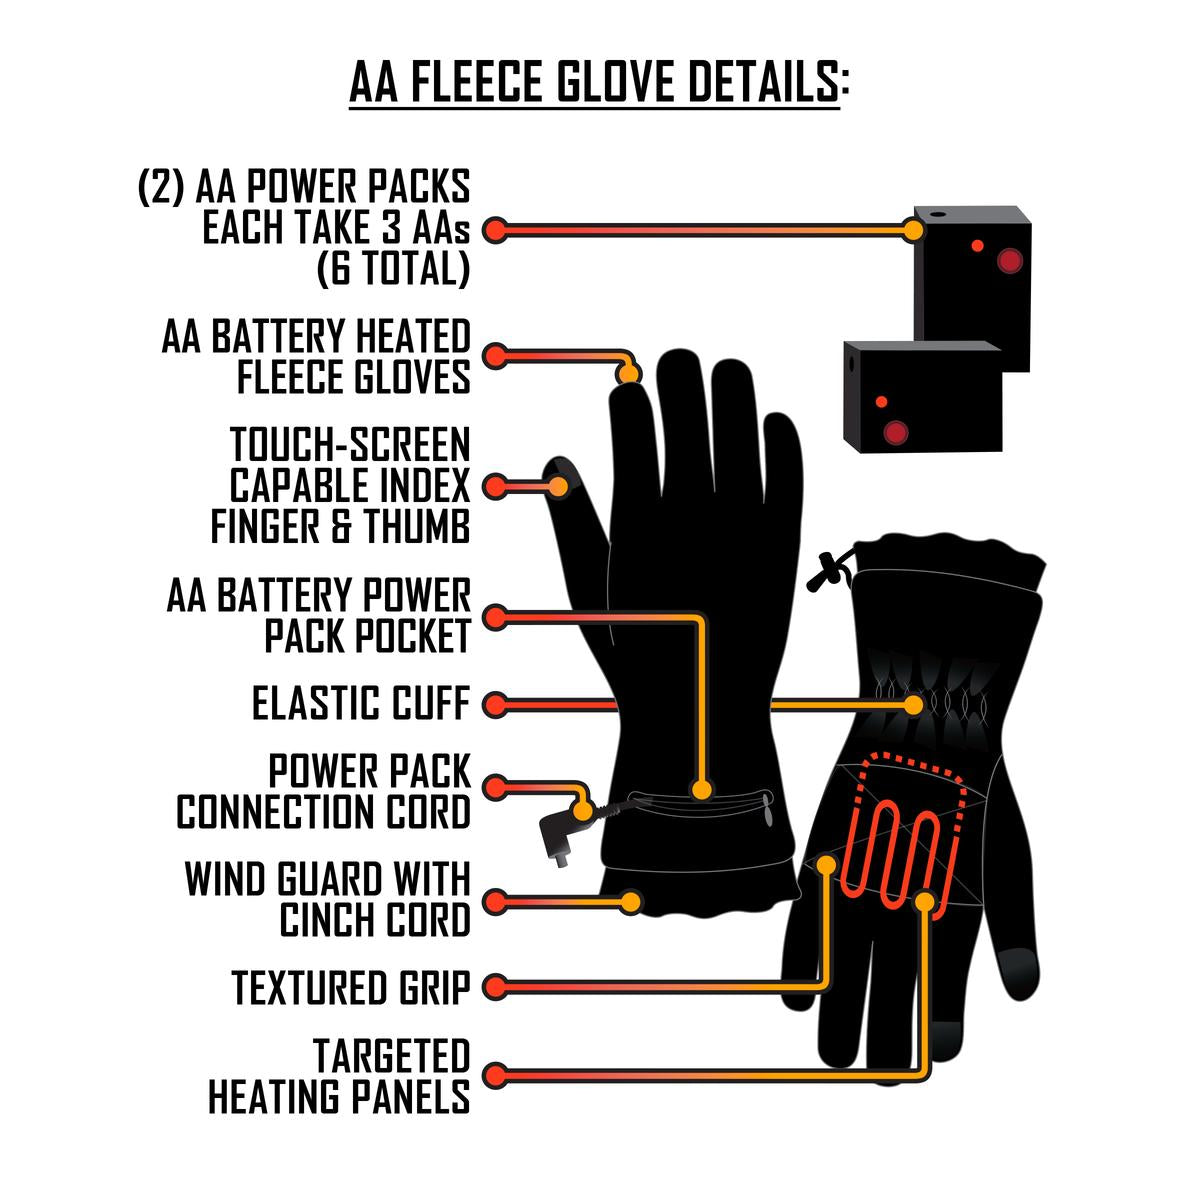 ActionHeat AA Battery Heated Fleece Gloves - Battery